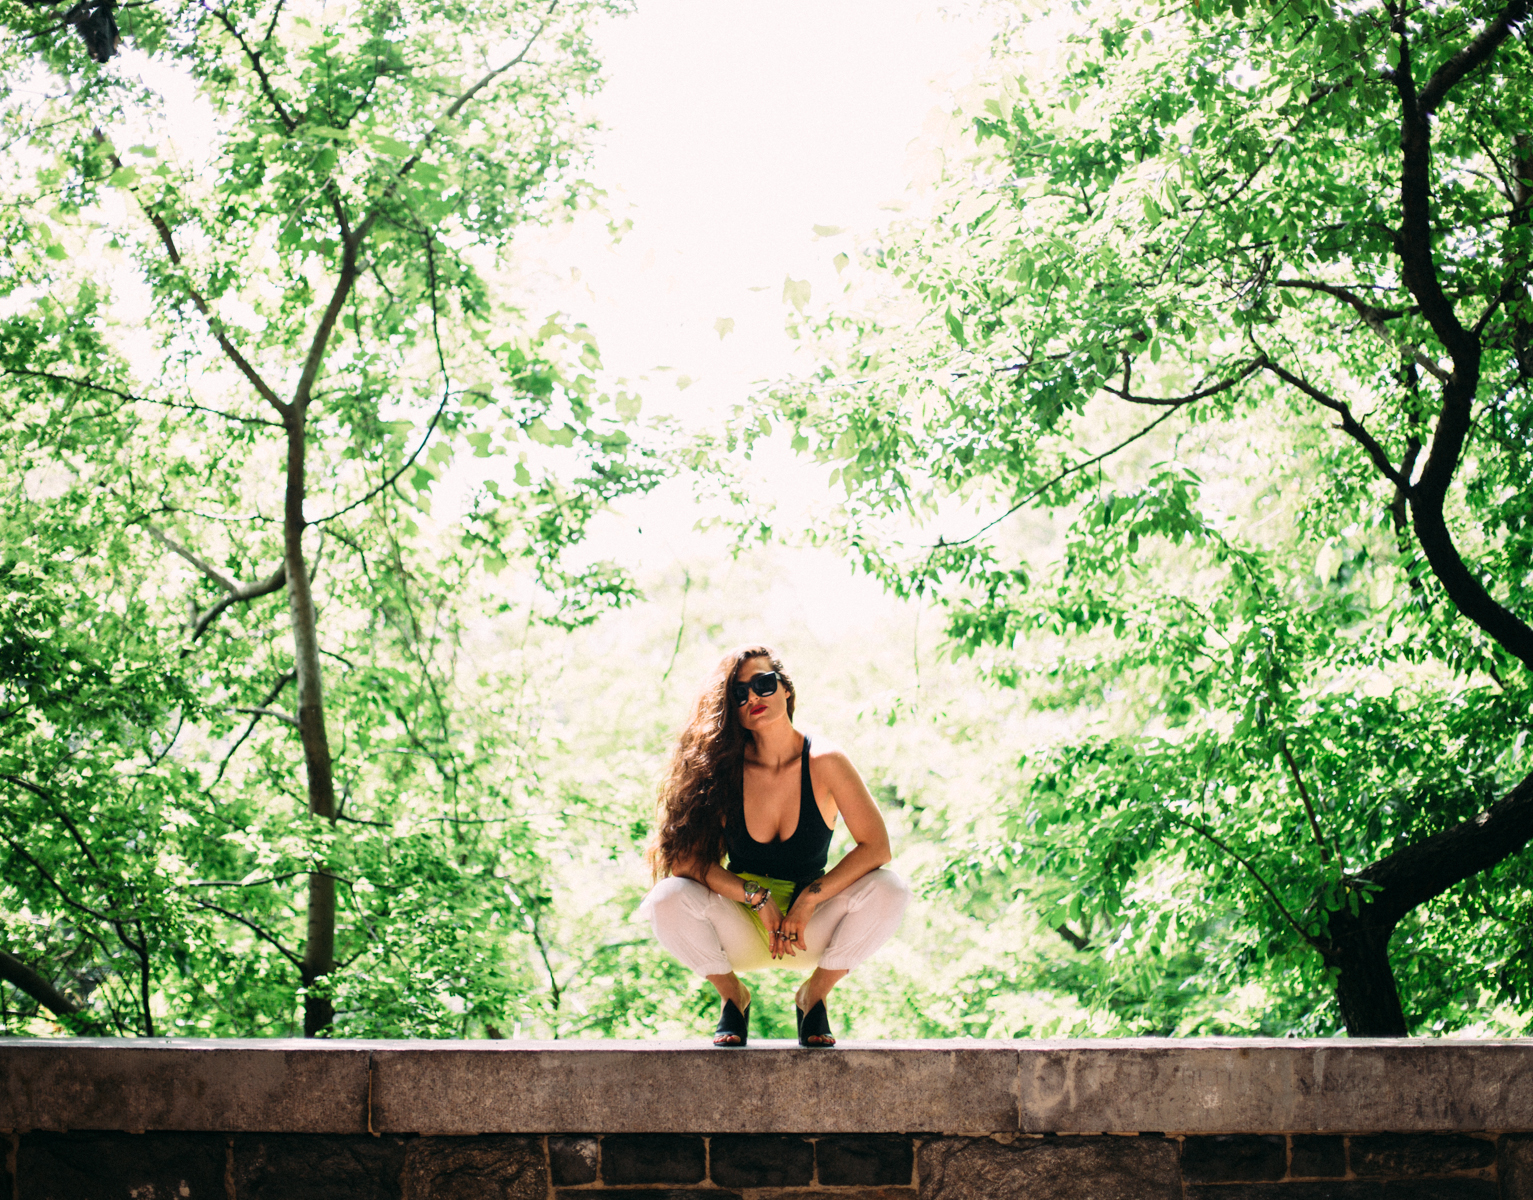 NYC New York City Girl Model Woman Photoshoot Woods Nature